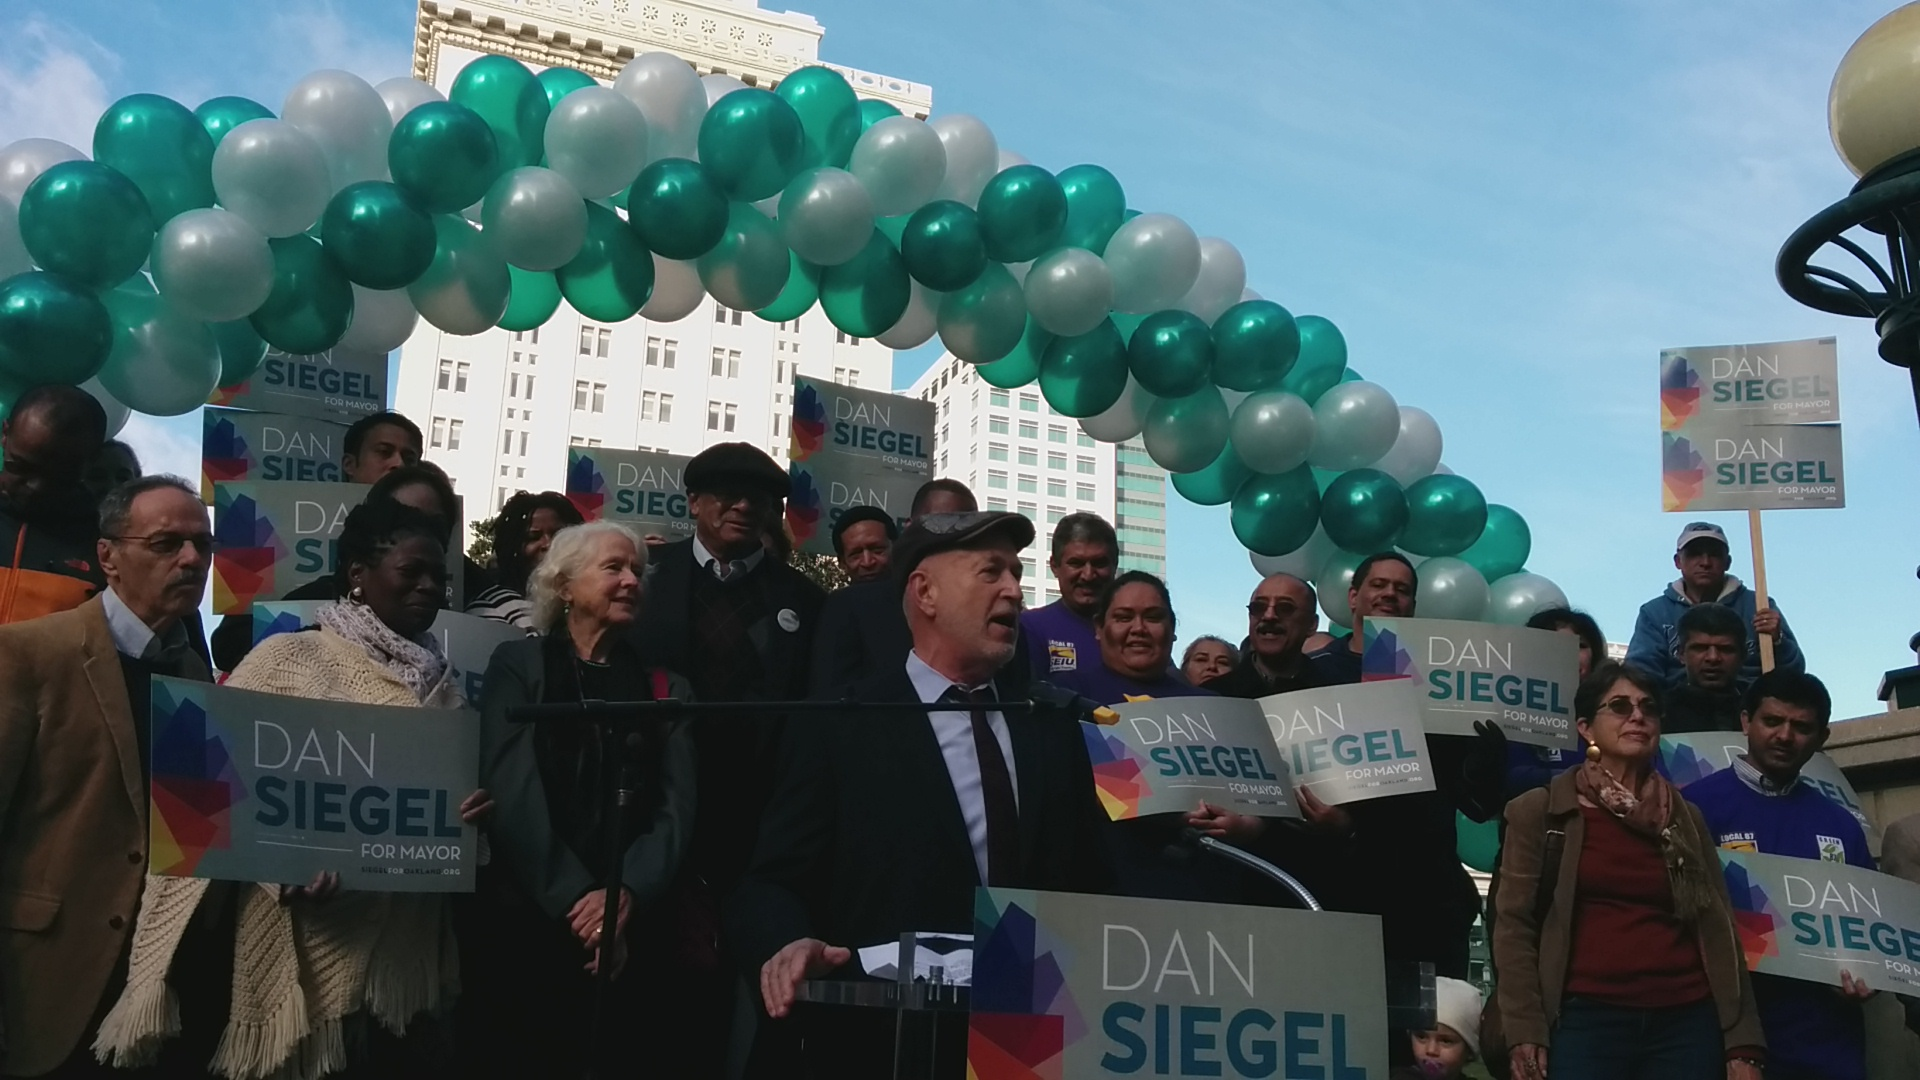 Dan Siegel announces candidacy for Oakland mayor